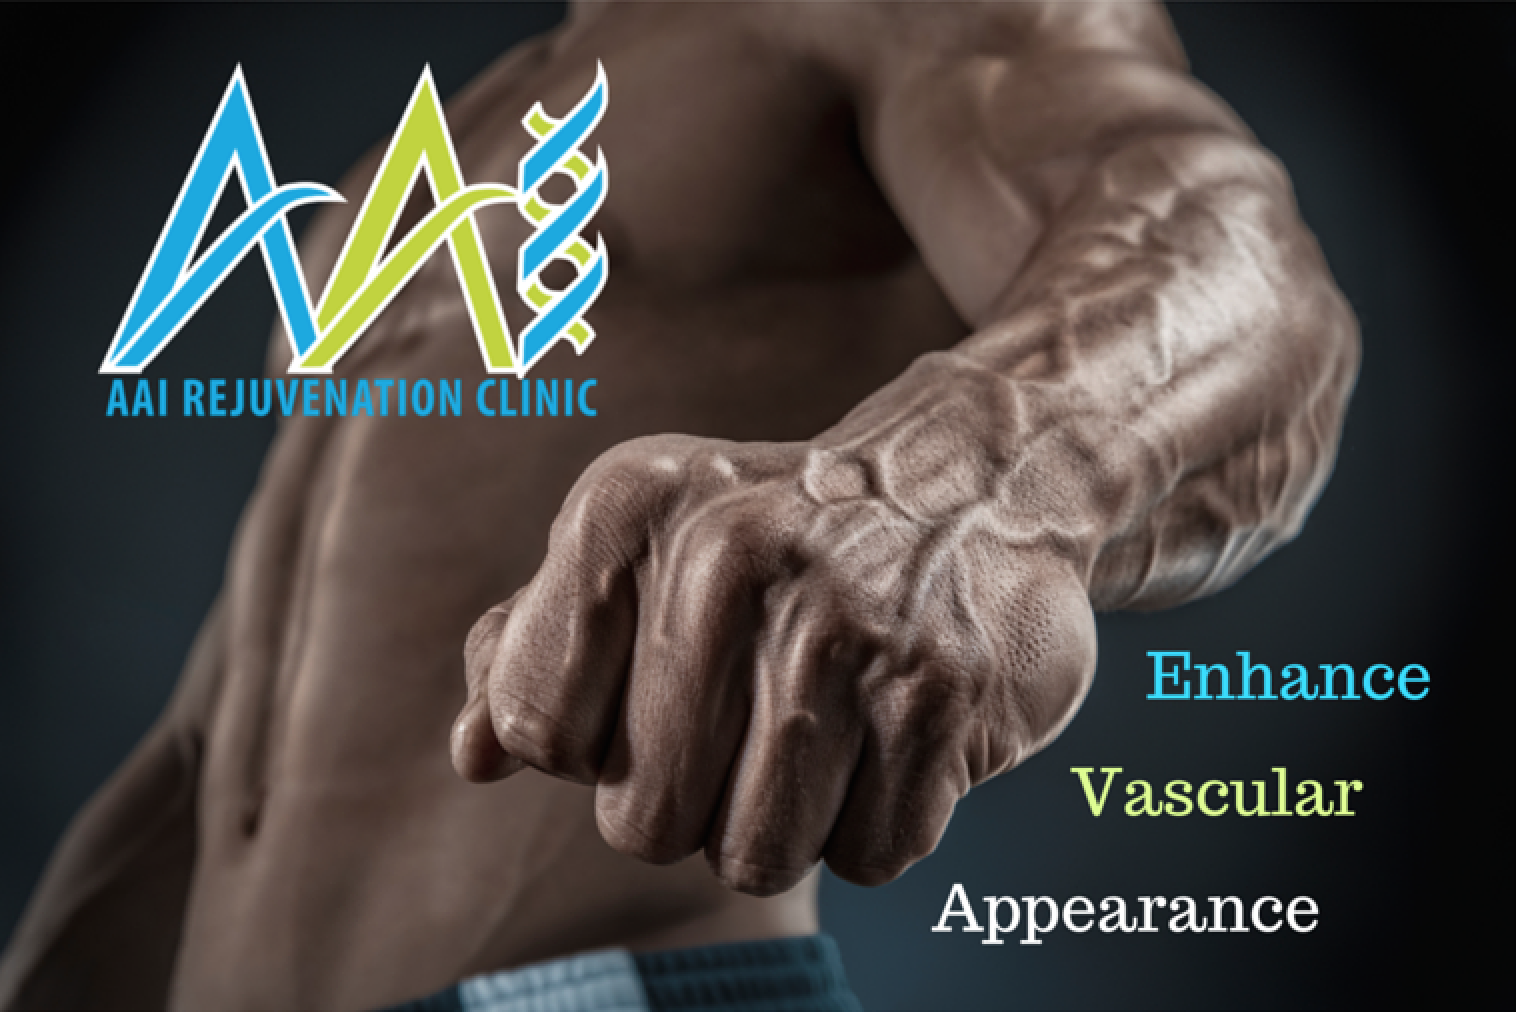 Improve Vascular Appearance Naturally and Effectively